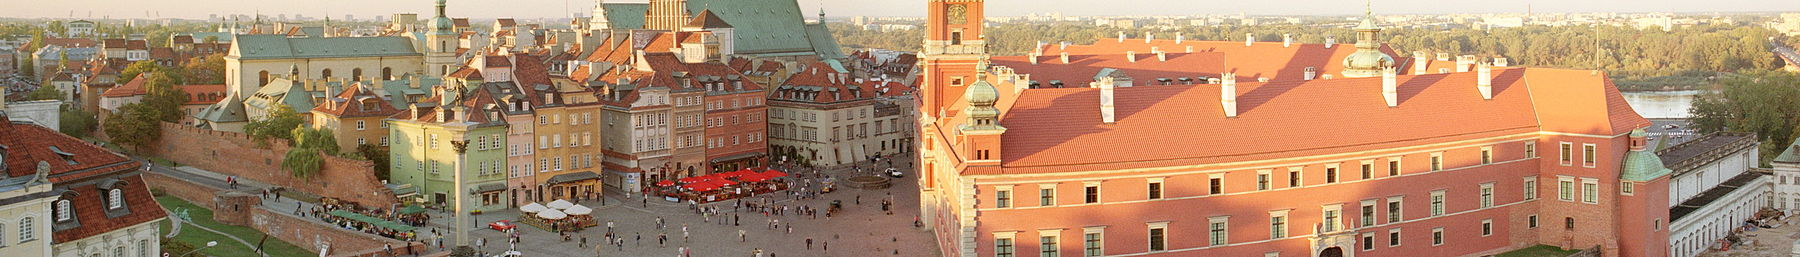 Warsaw Old Town Banner.jpg